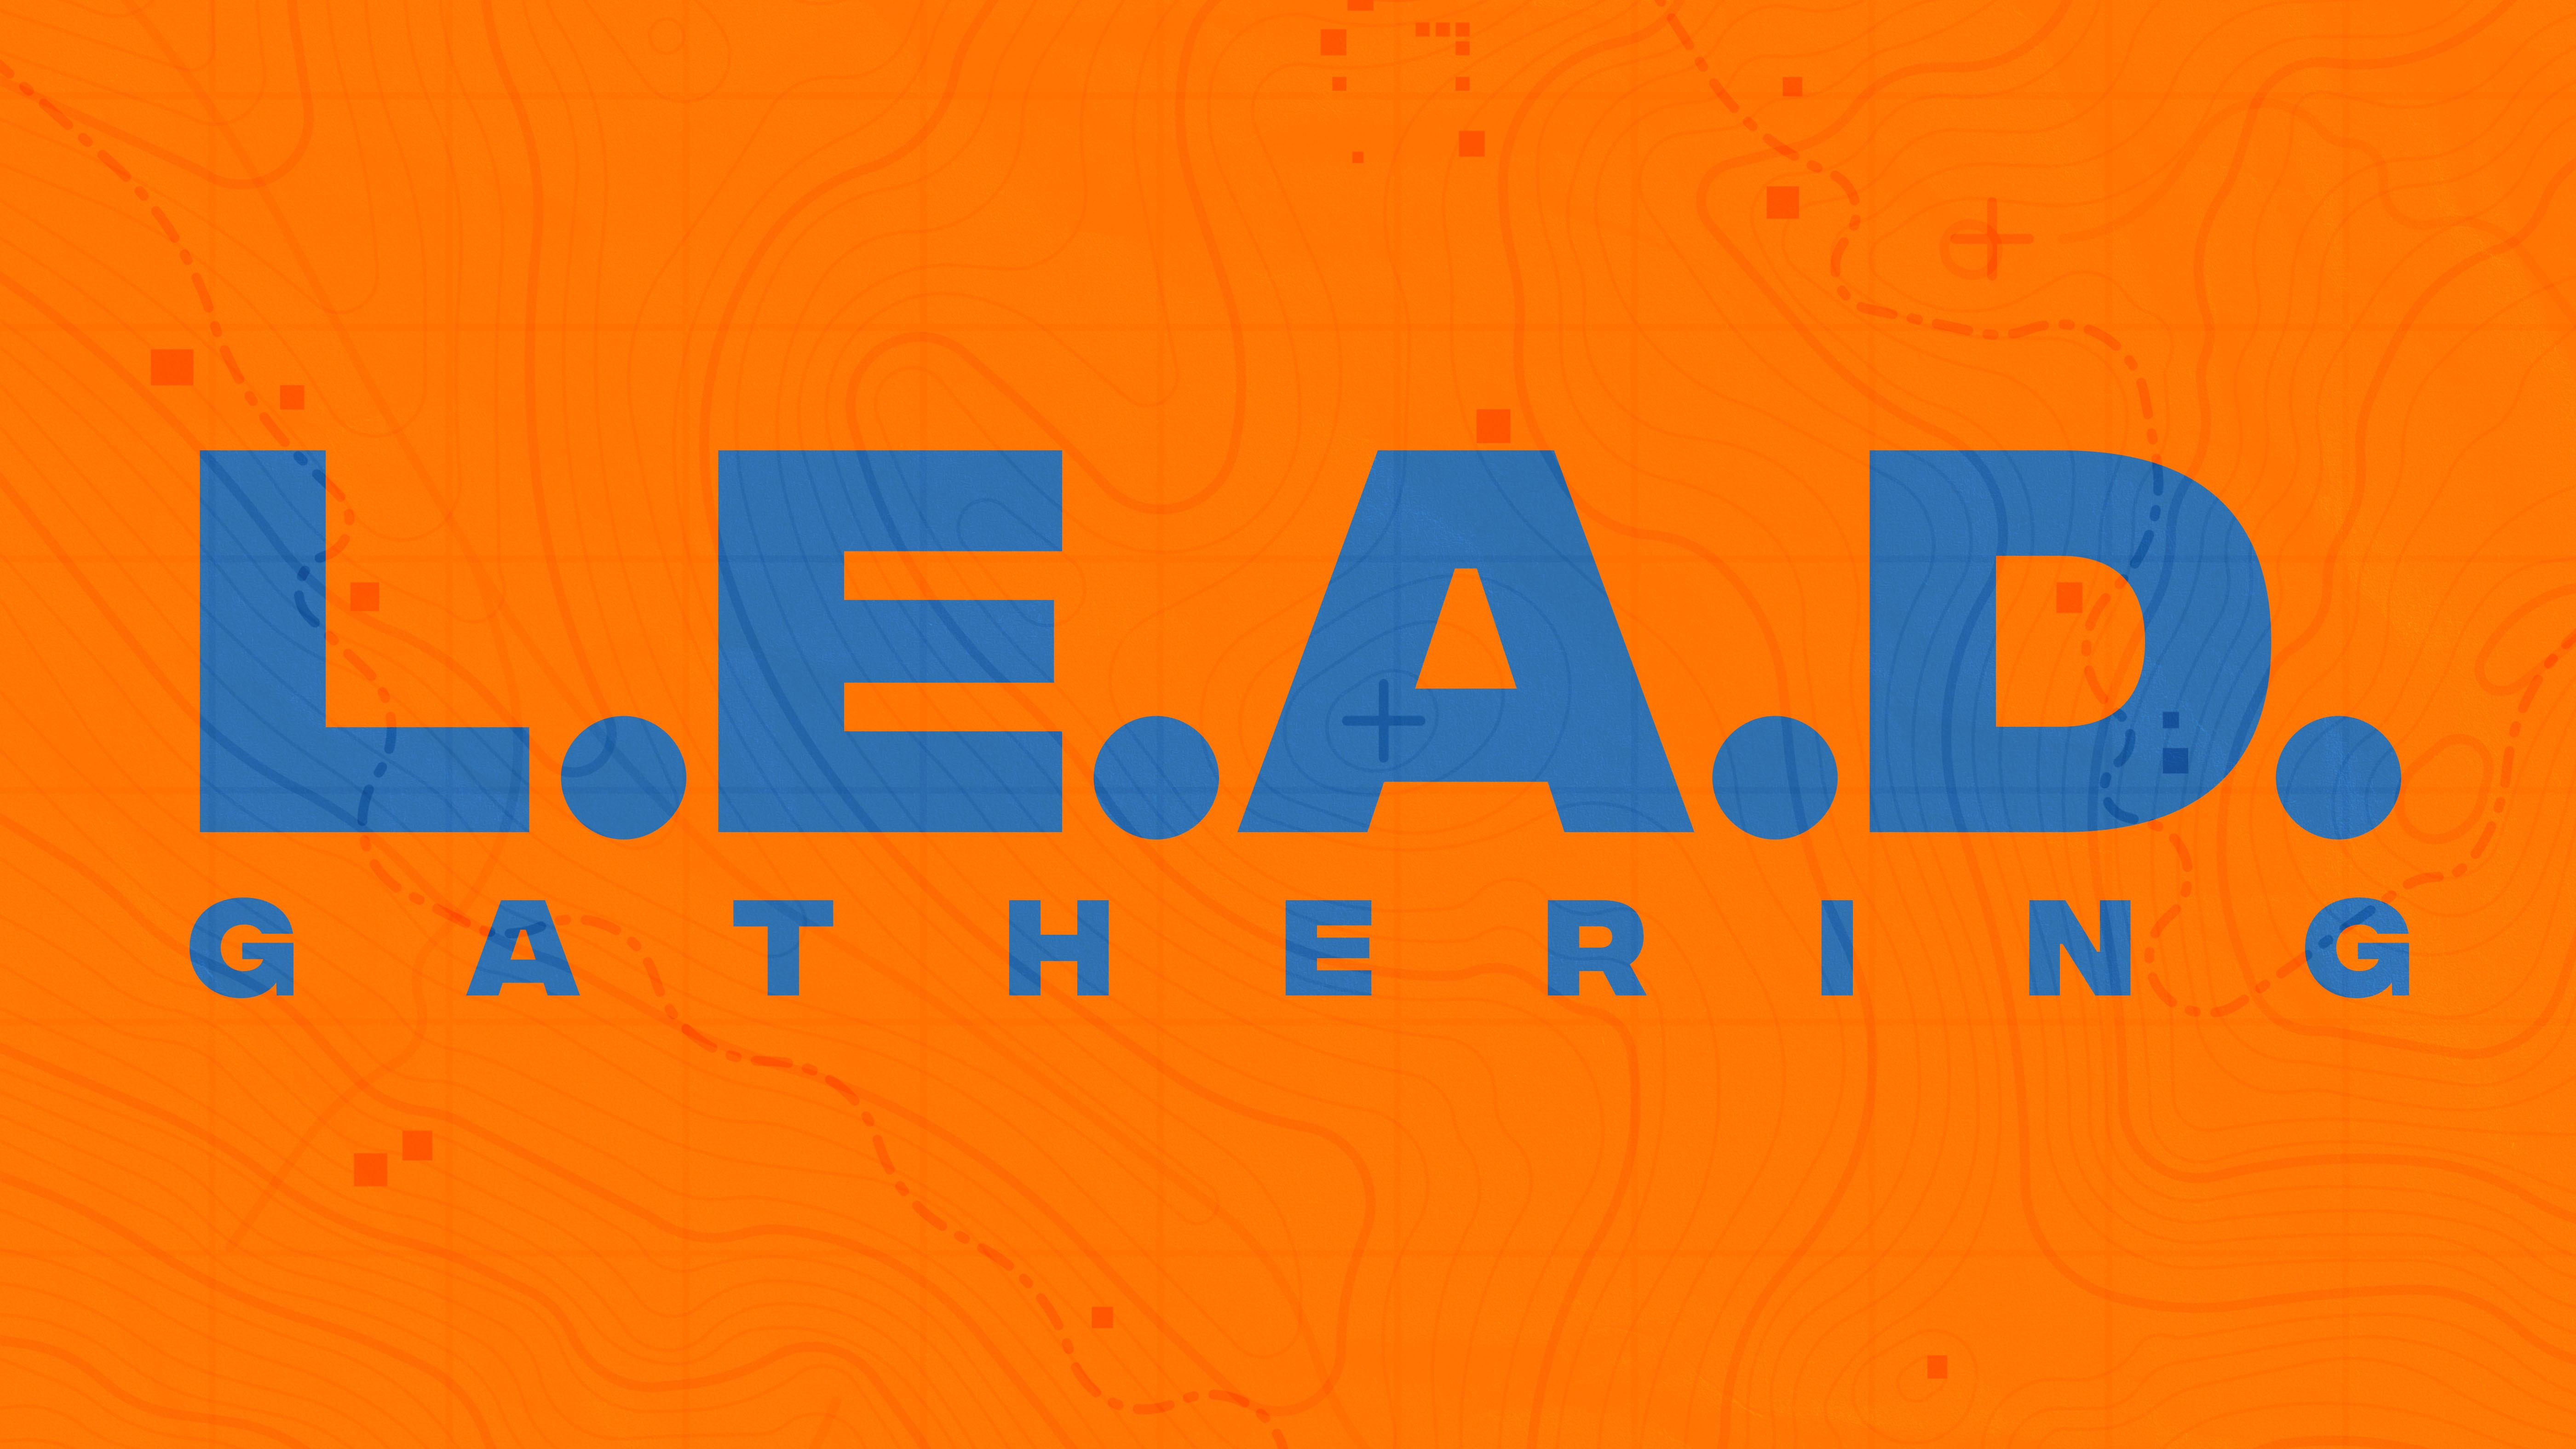 lead gathering no date